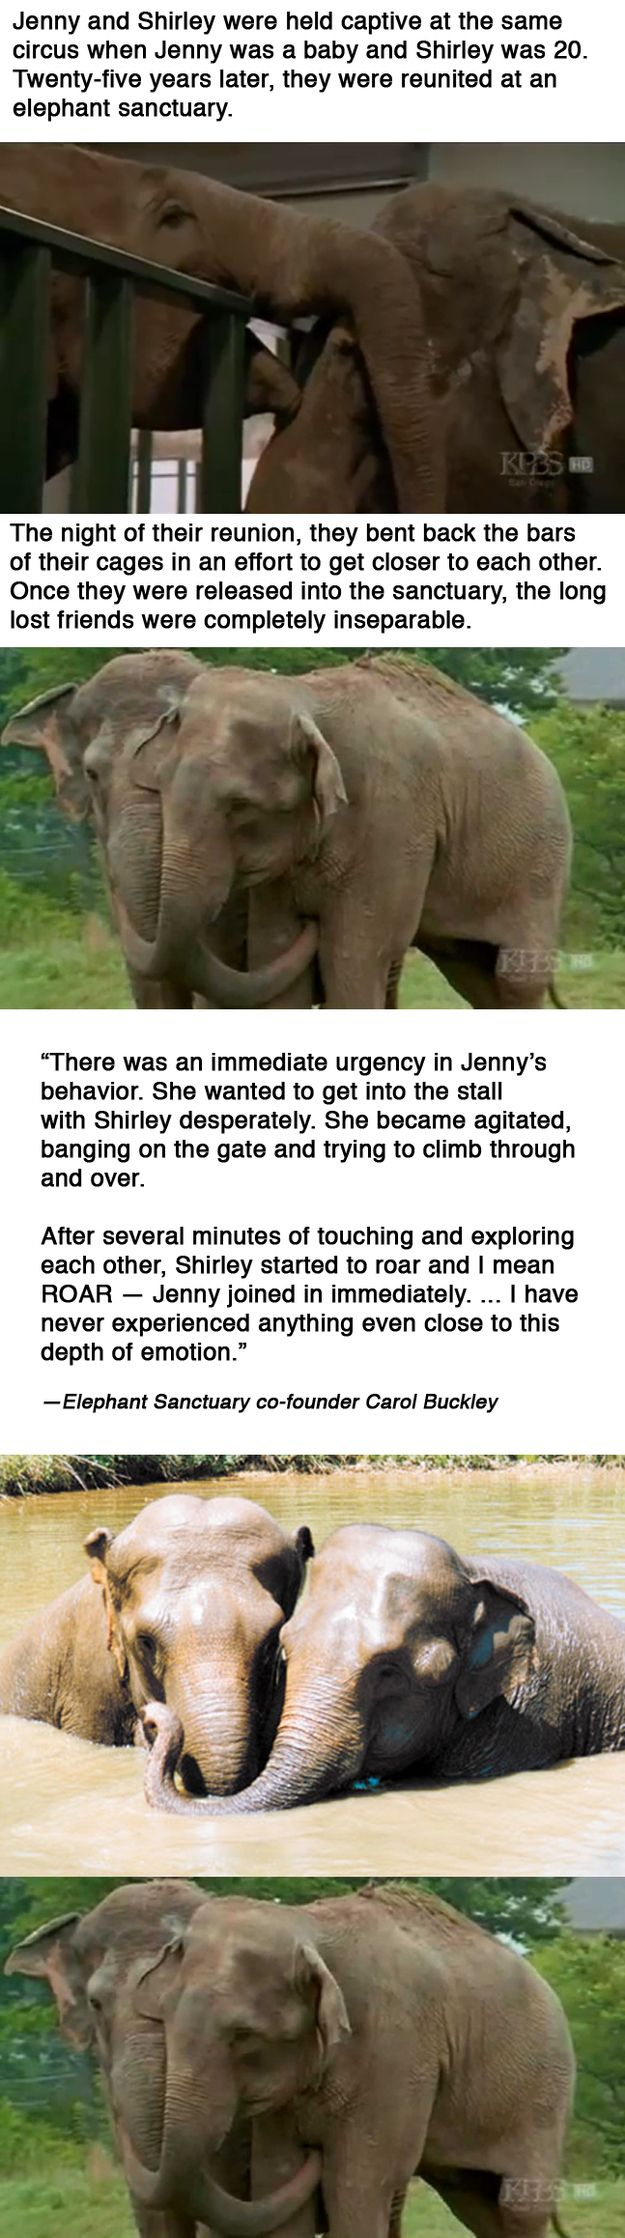 The abused circus elephants who were reunited at an elephant sanctuary after 25 years apart.Such an amazing story!